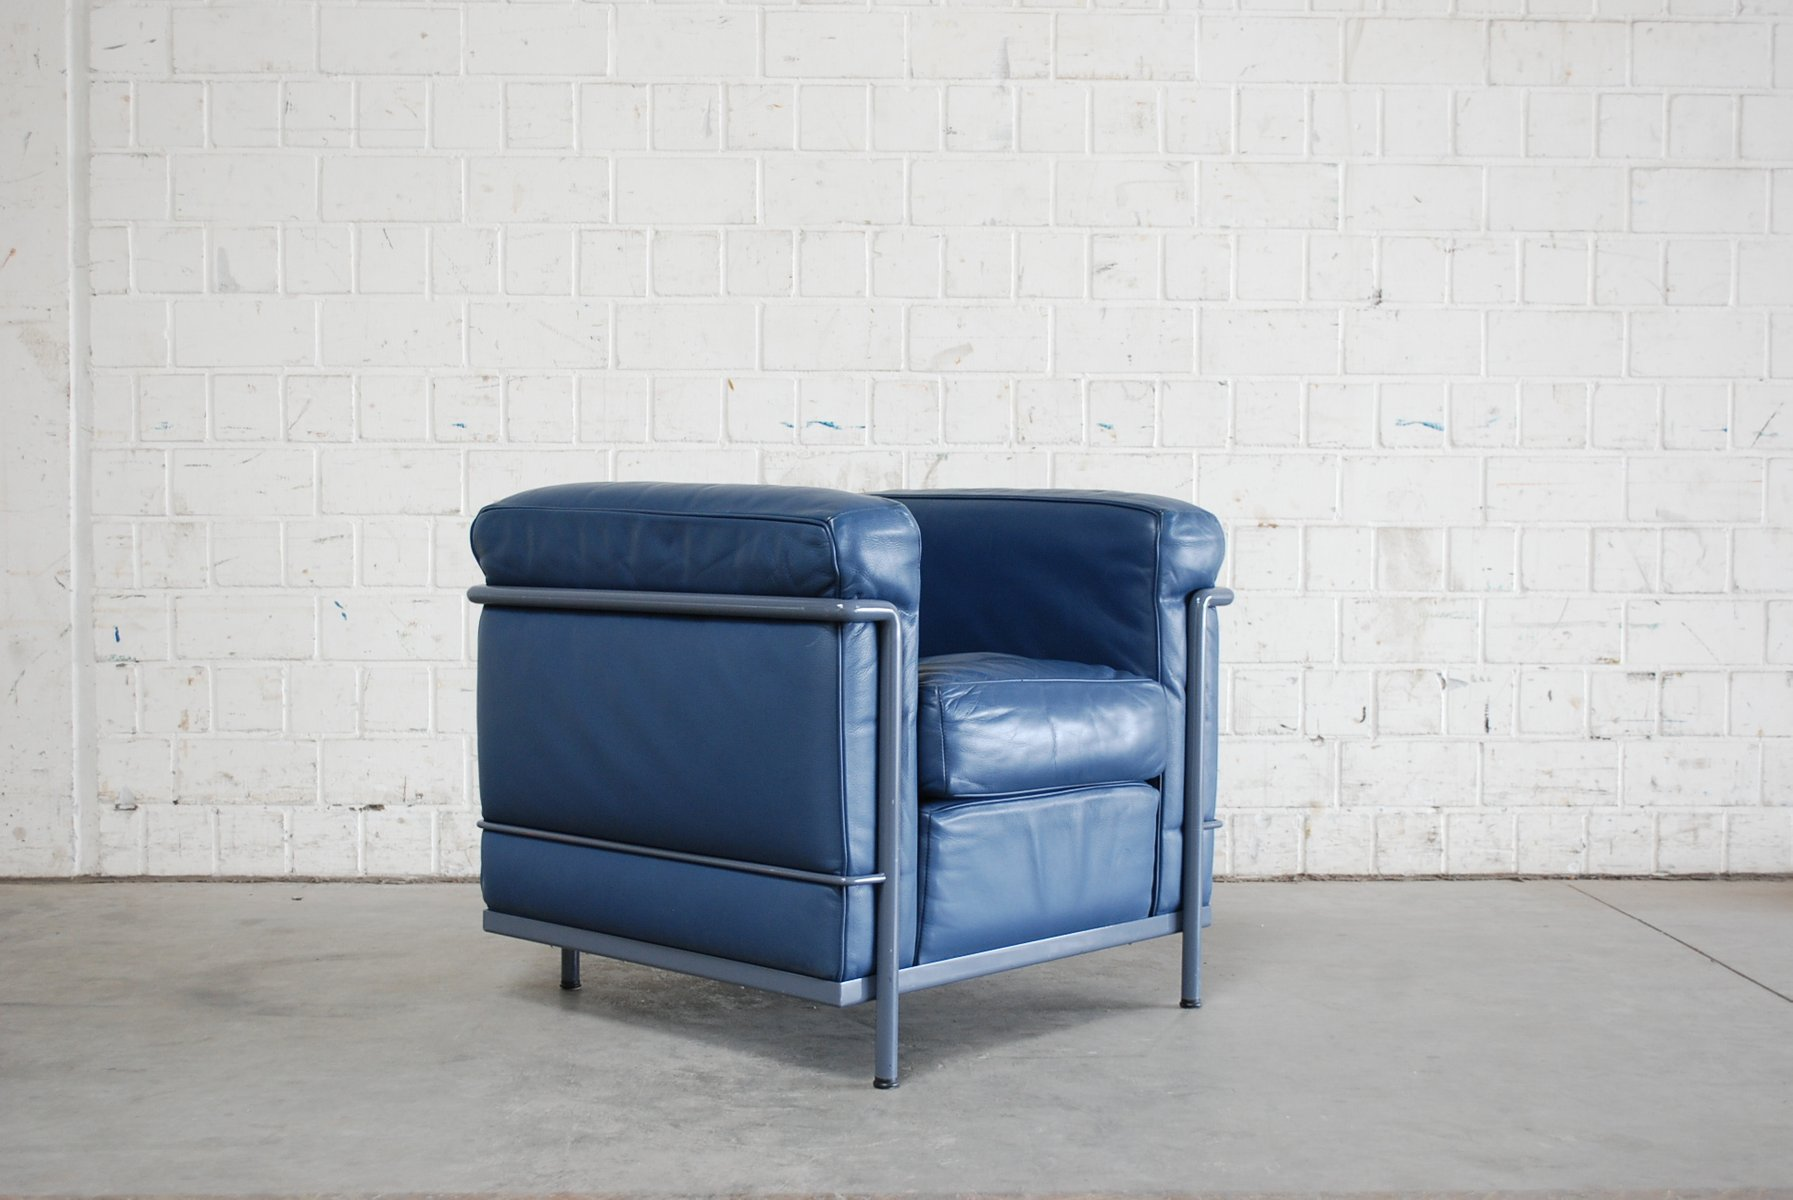 vintage blue model lc2 leather chair by le corbusier for cassina for sale at pamono. Black Bedroom Furniture Sets. Home Design Ideas